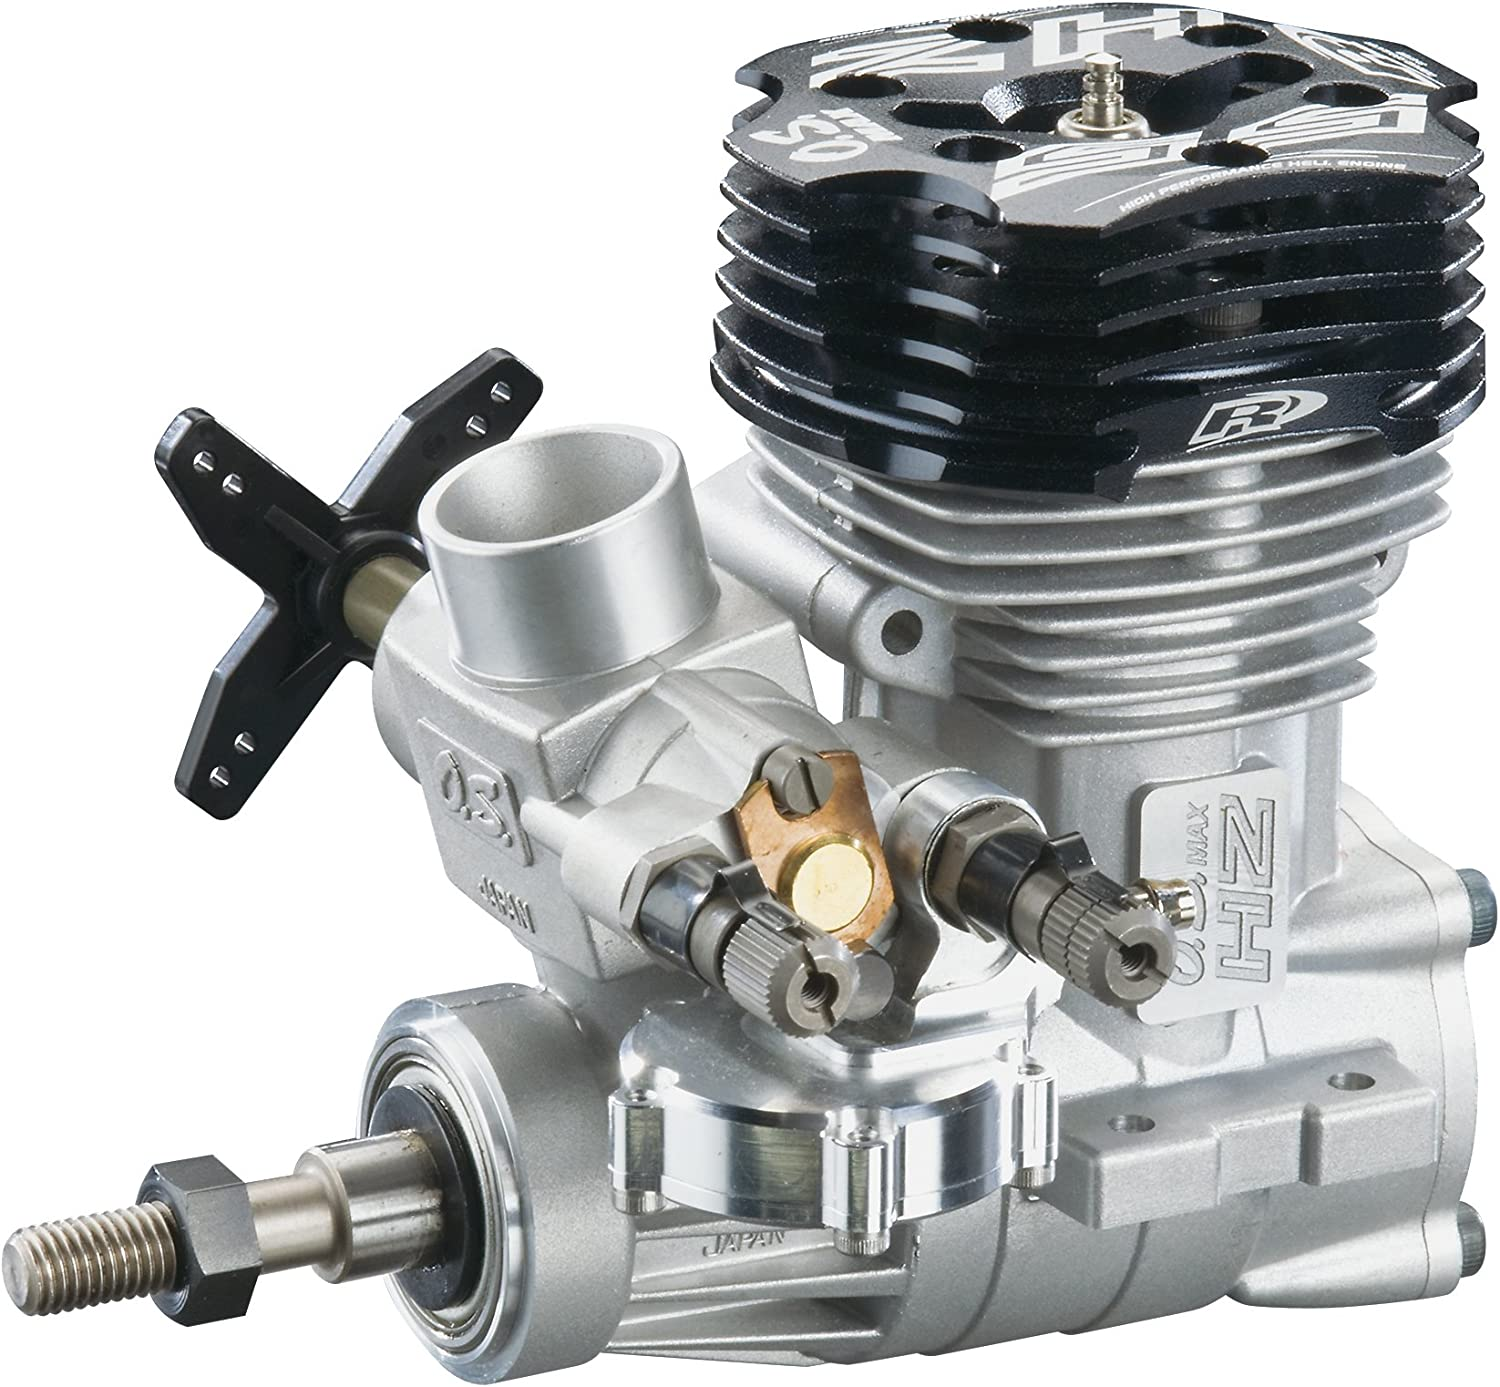 OS Engines 15650 Limited Special Price 55HZ-R DRS Ring Free shipping Helicopter Engine 40L-R